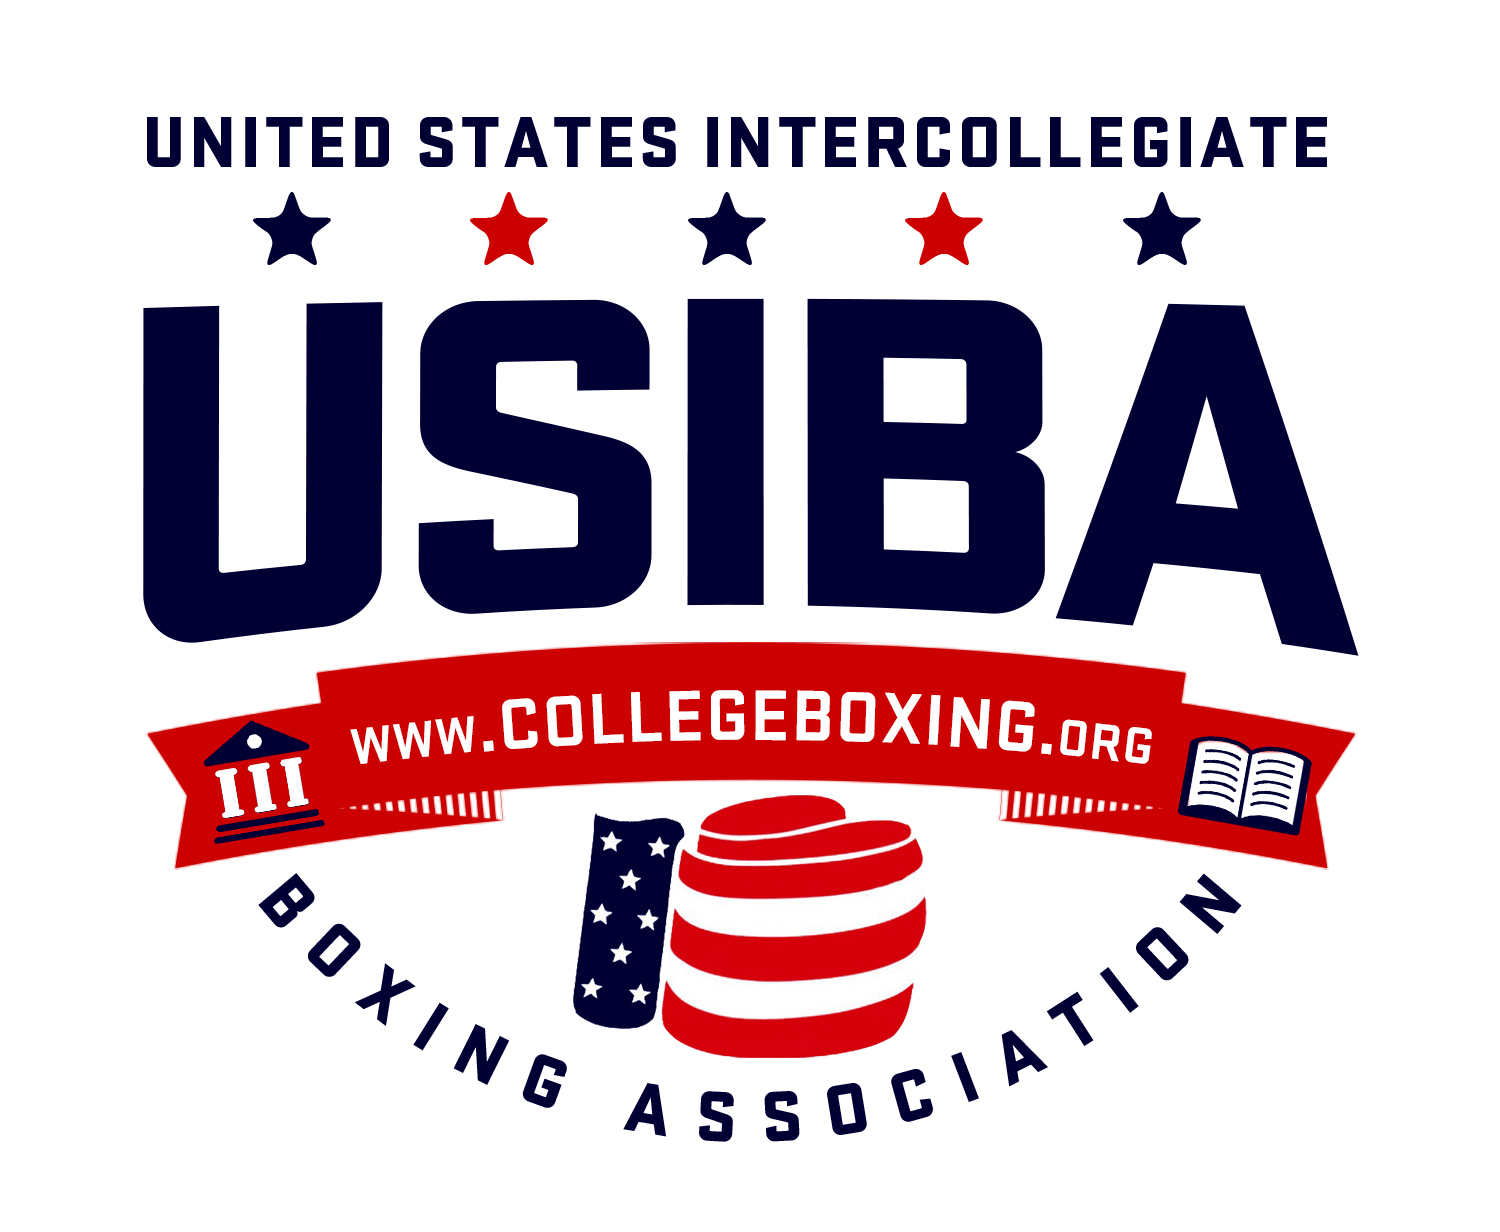 United States Intercollegiate Boxing Association logo--blue capital letters over stars and stripes boxing glove